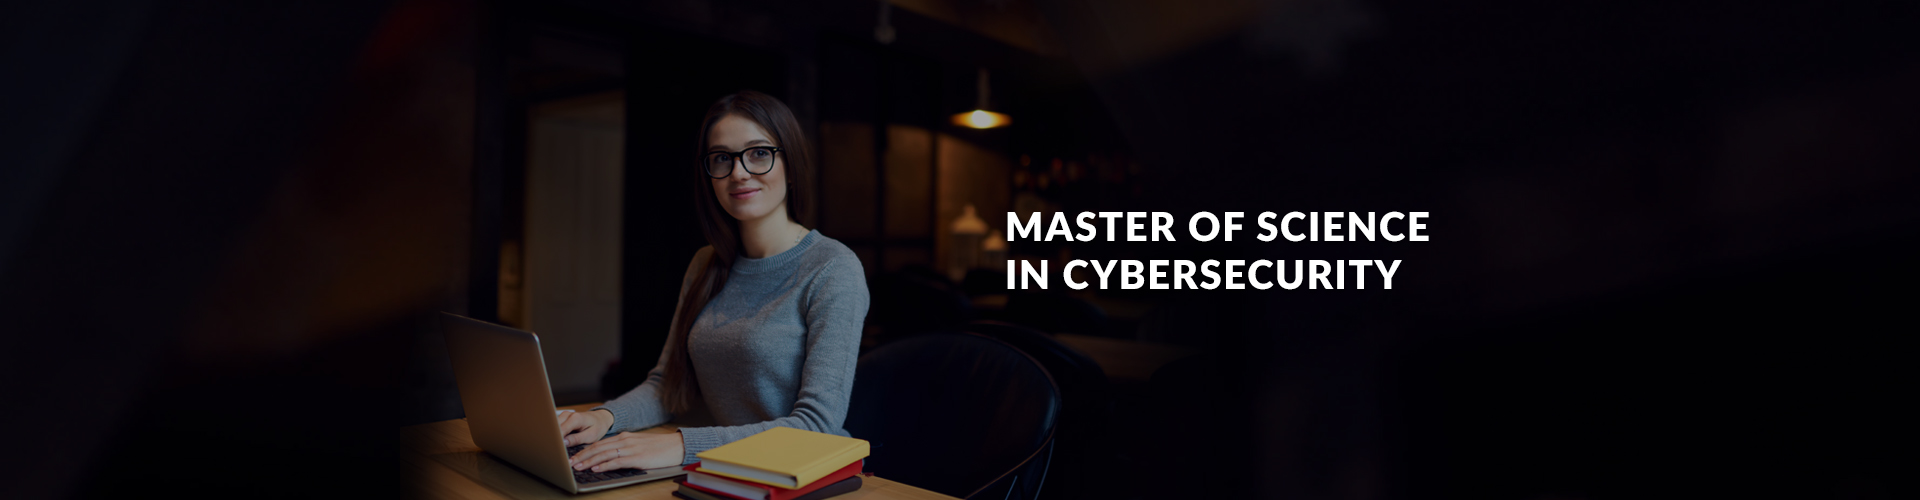 master-of-science-in-cyber-security